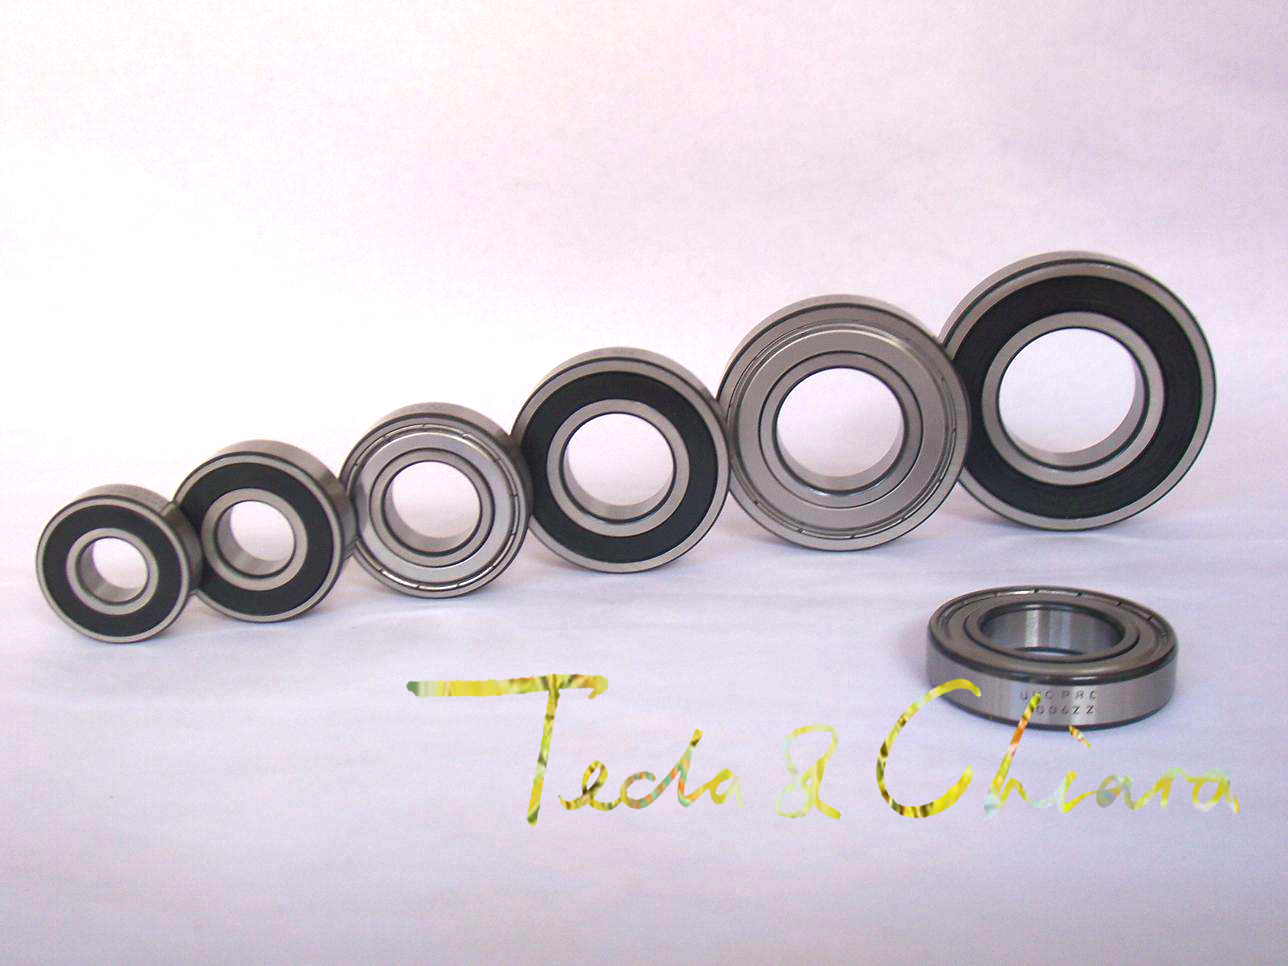 608 608ZZ 608RS 608-2Z 608Z 608-2RS ZZ RS RZ 2RZ AEBC-5 Deep Groove Ball Bearings 8 x 22 x 7mm High Quality